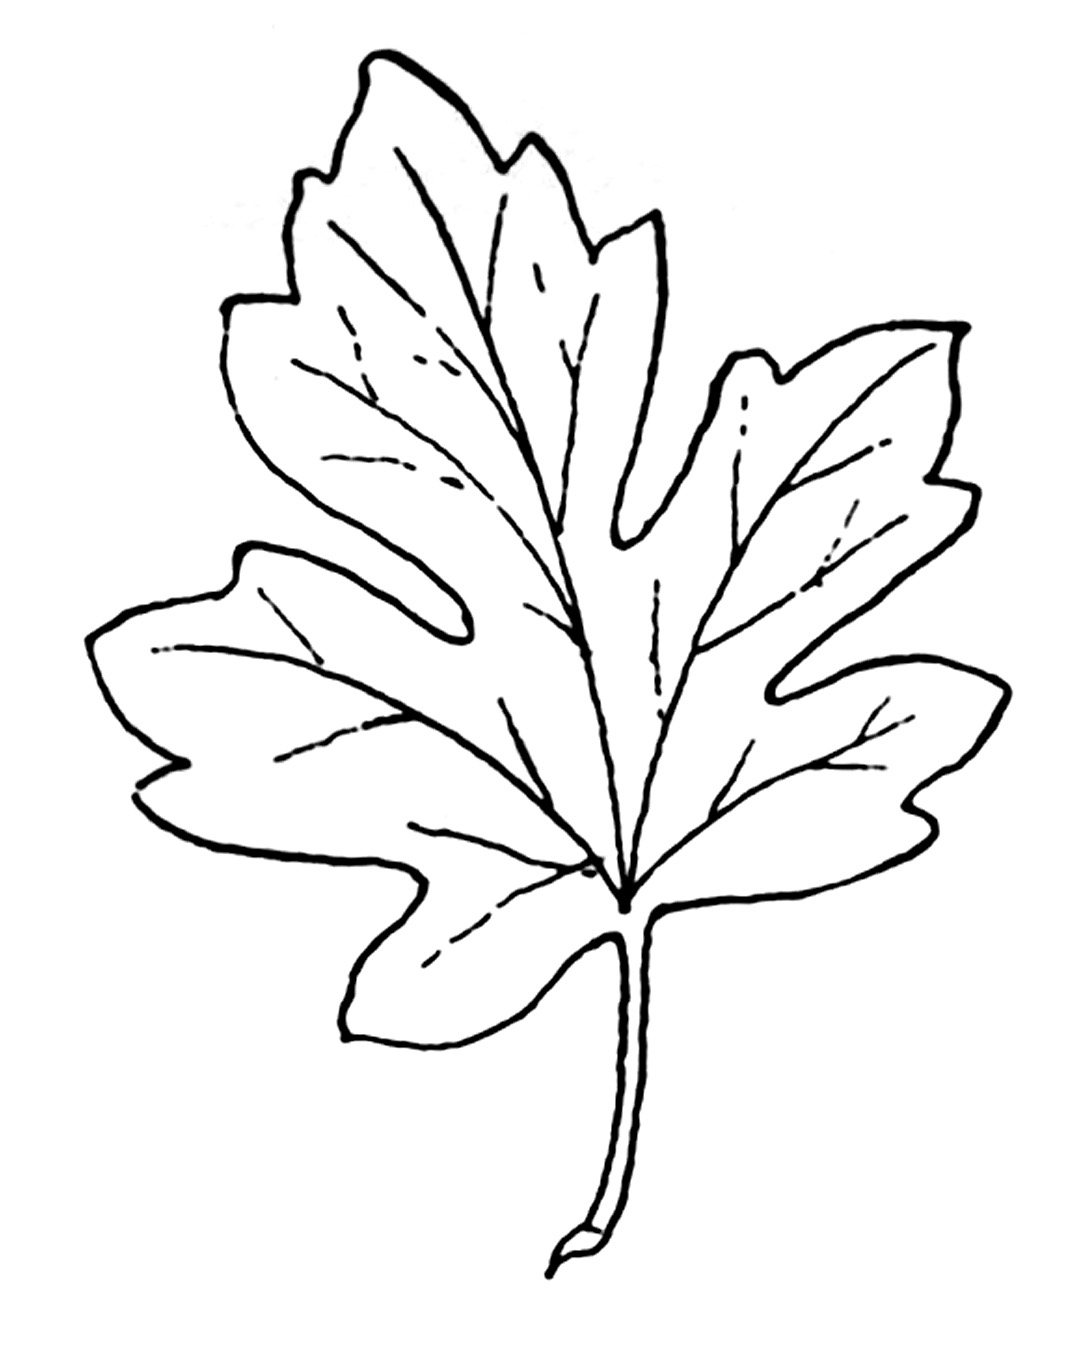 Leaf black and white september leaves clipart black and.